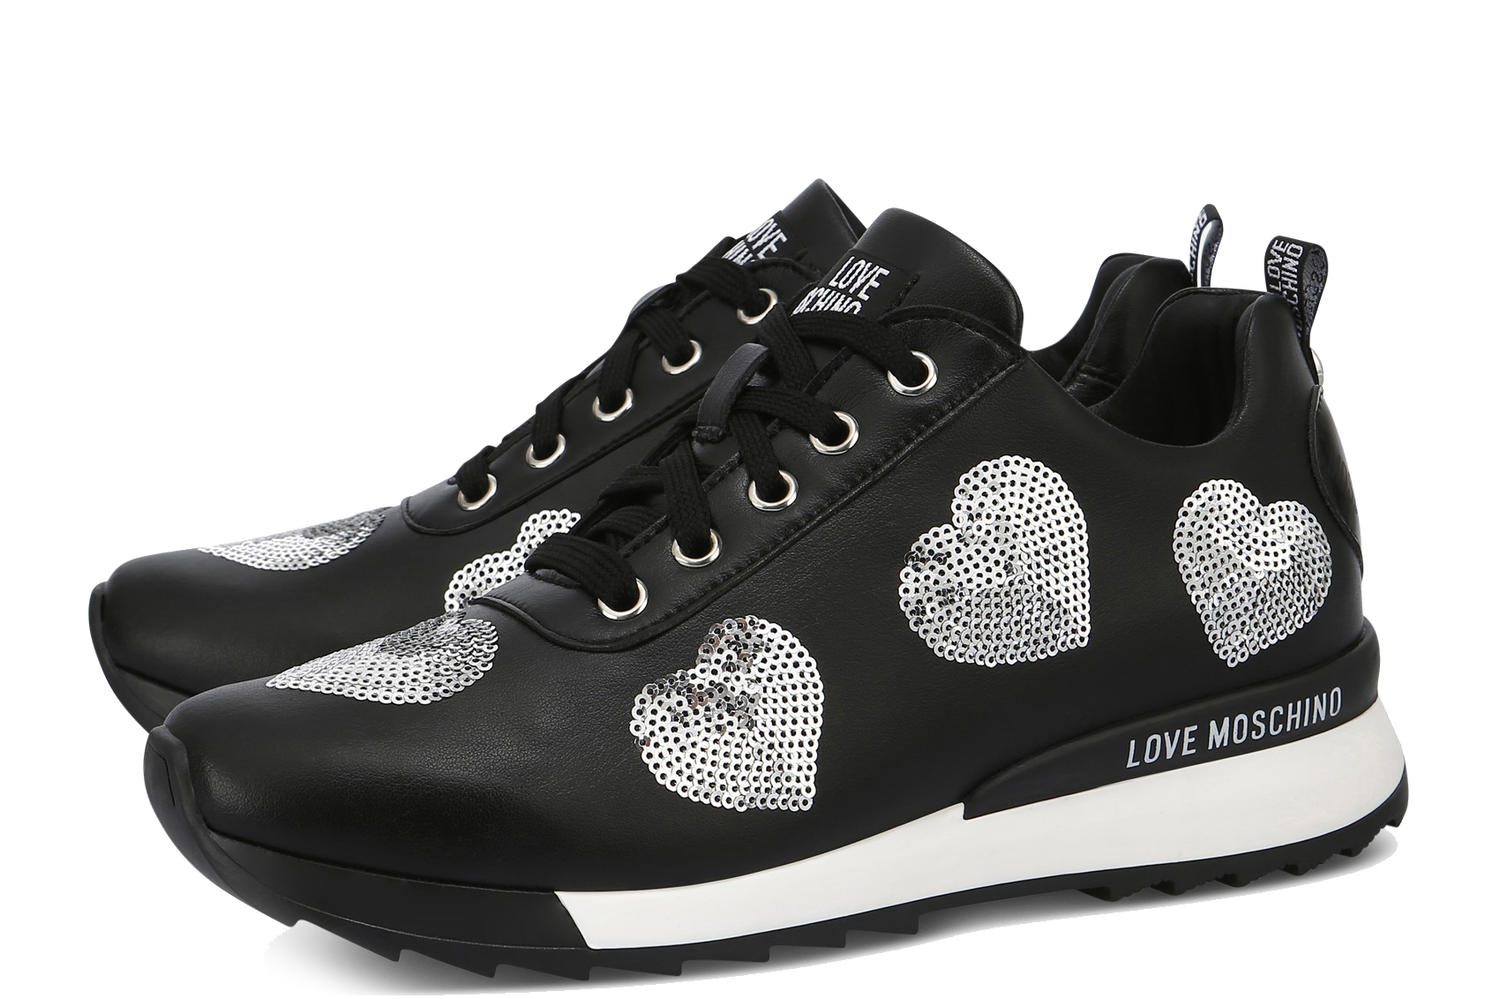 6f42ed1c0069af Love Moschino Sneakers Black - Shop Online At Best Prices!